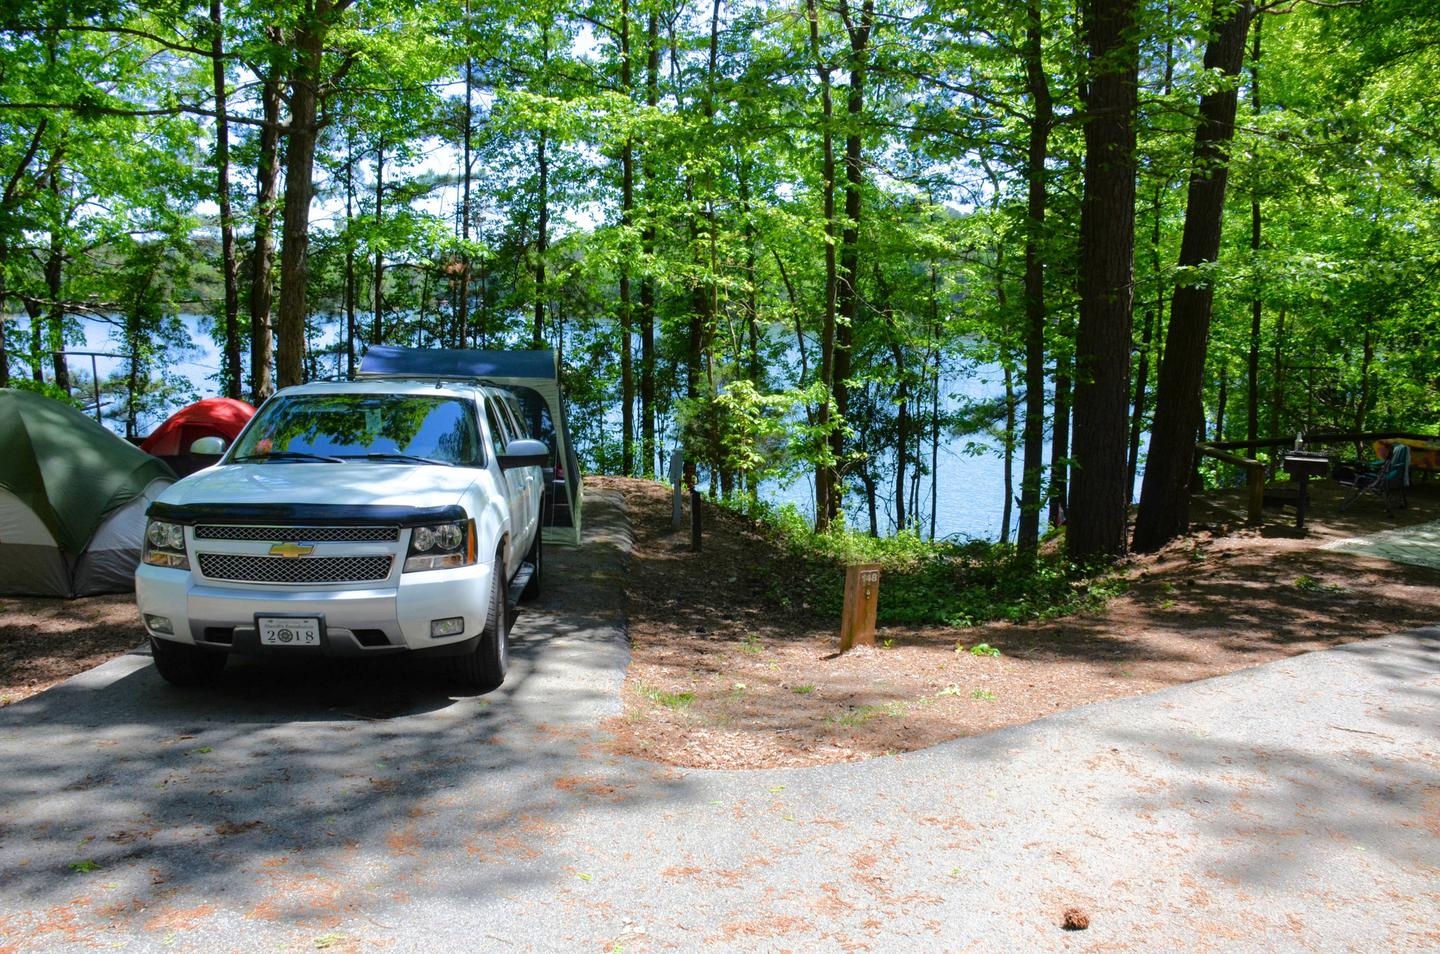 Driveway entrance angle/slope, utilities-side clearance.McKinney Campground, campsite 148.